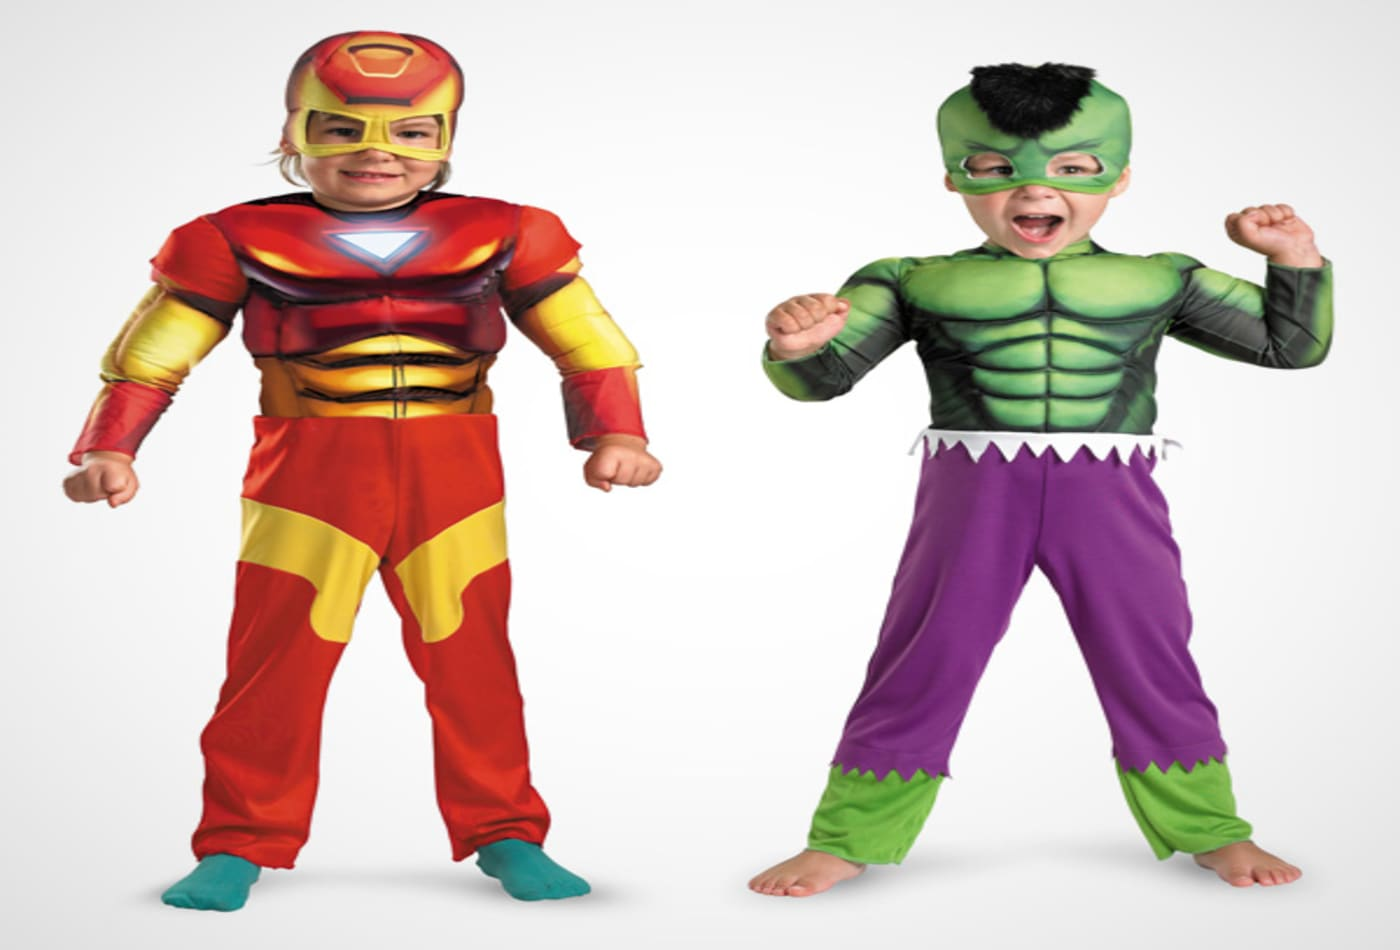 Halloween-costumes-kids-2012-ironman-hulk.jpg